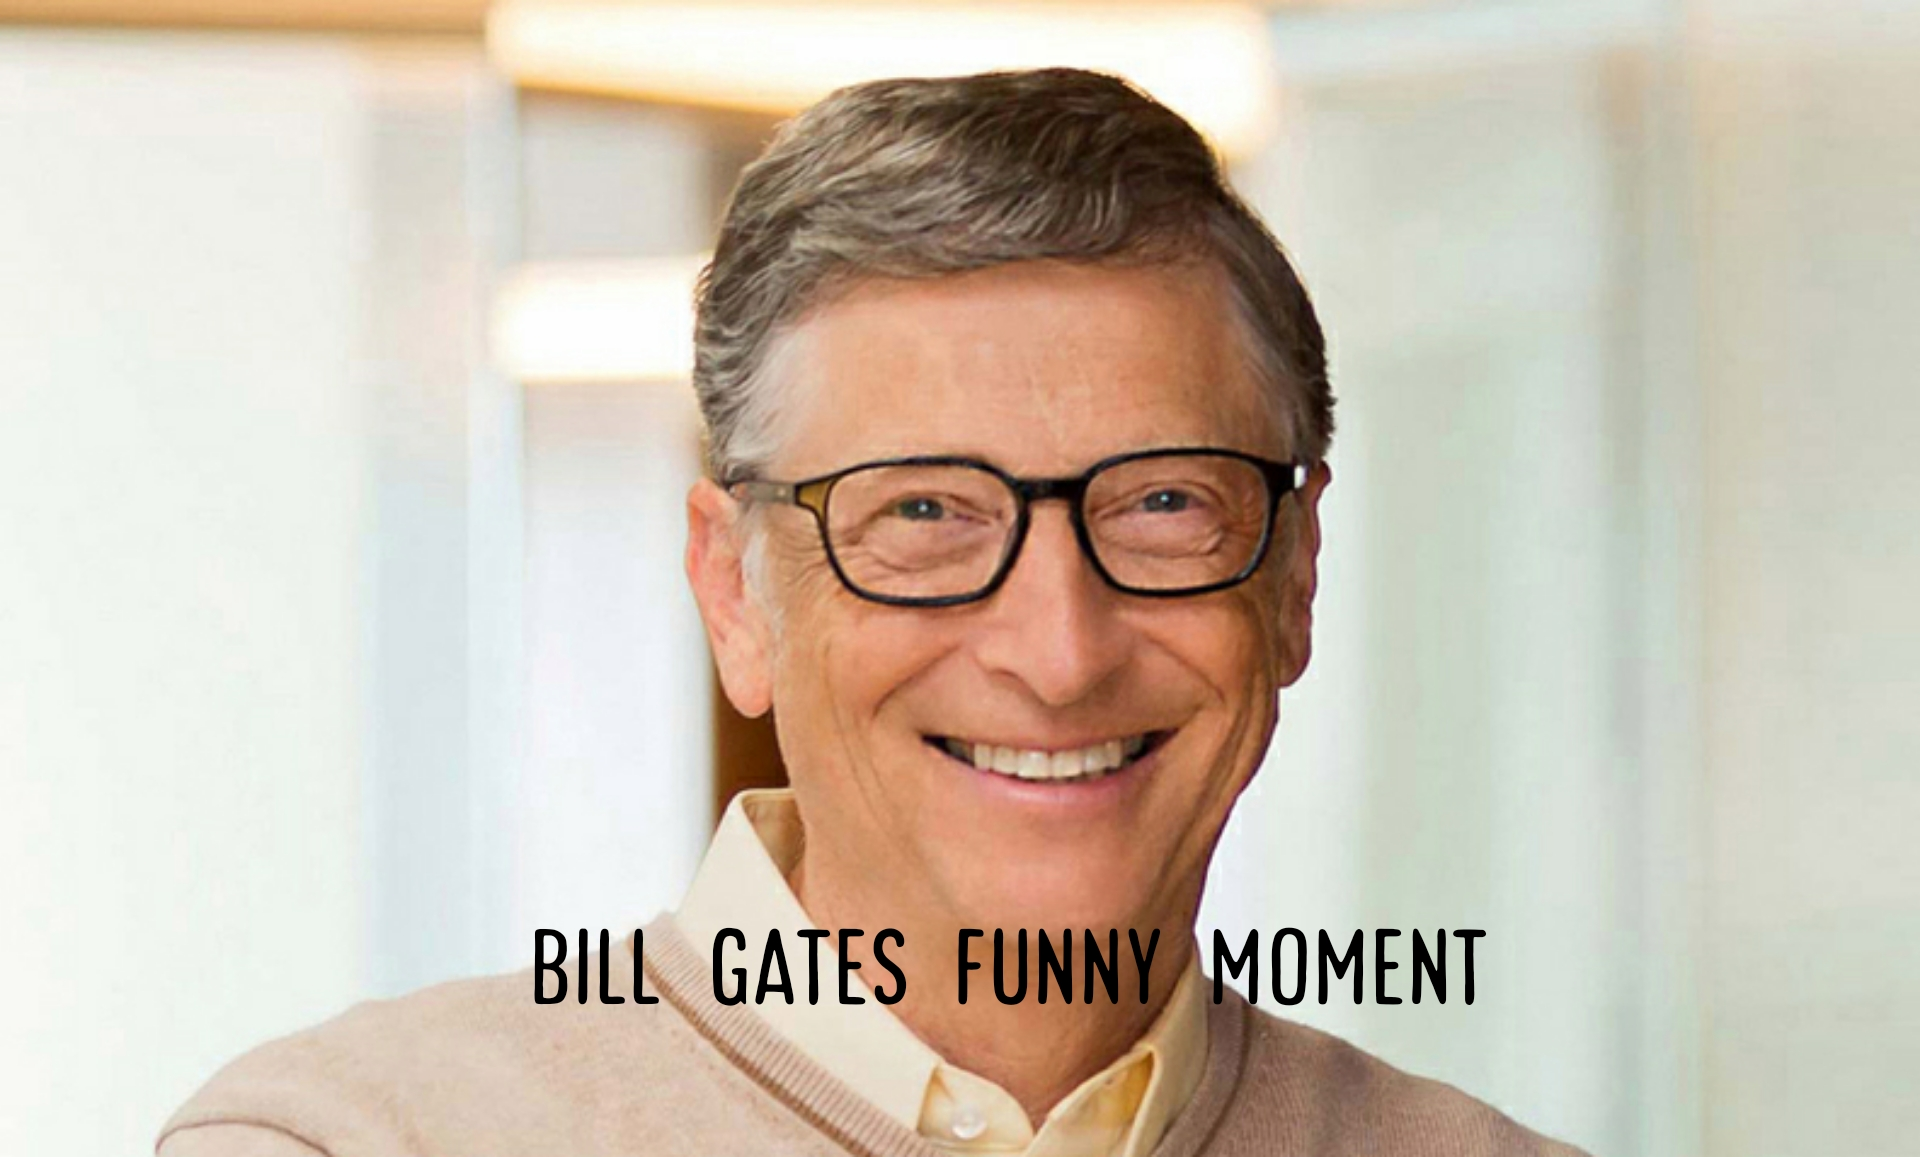 bill gates funny moment,  bill gates funny moment story, bill gates funny moment in life, bill gates funny